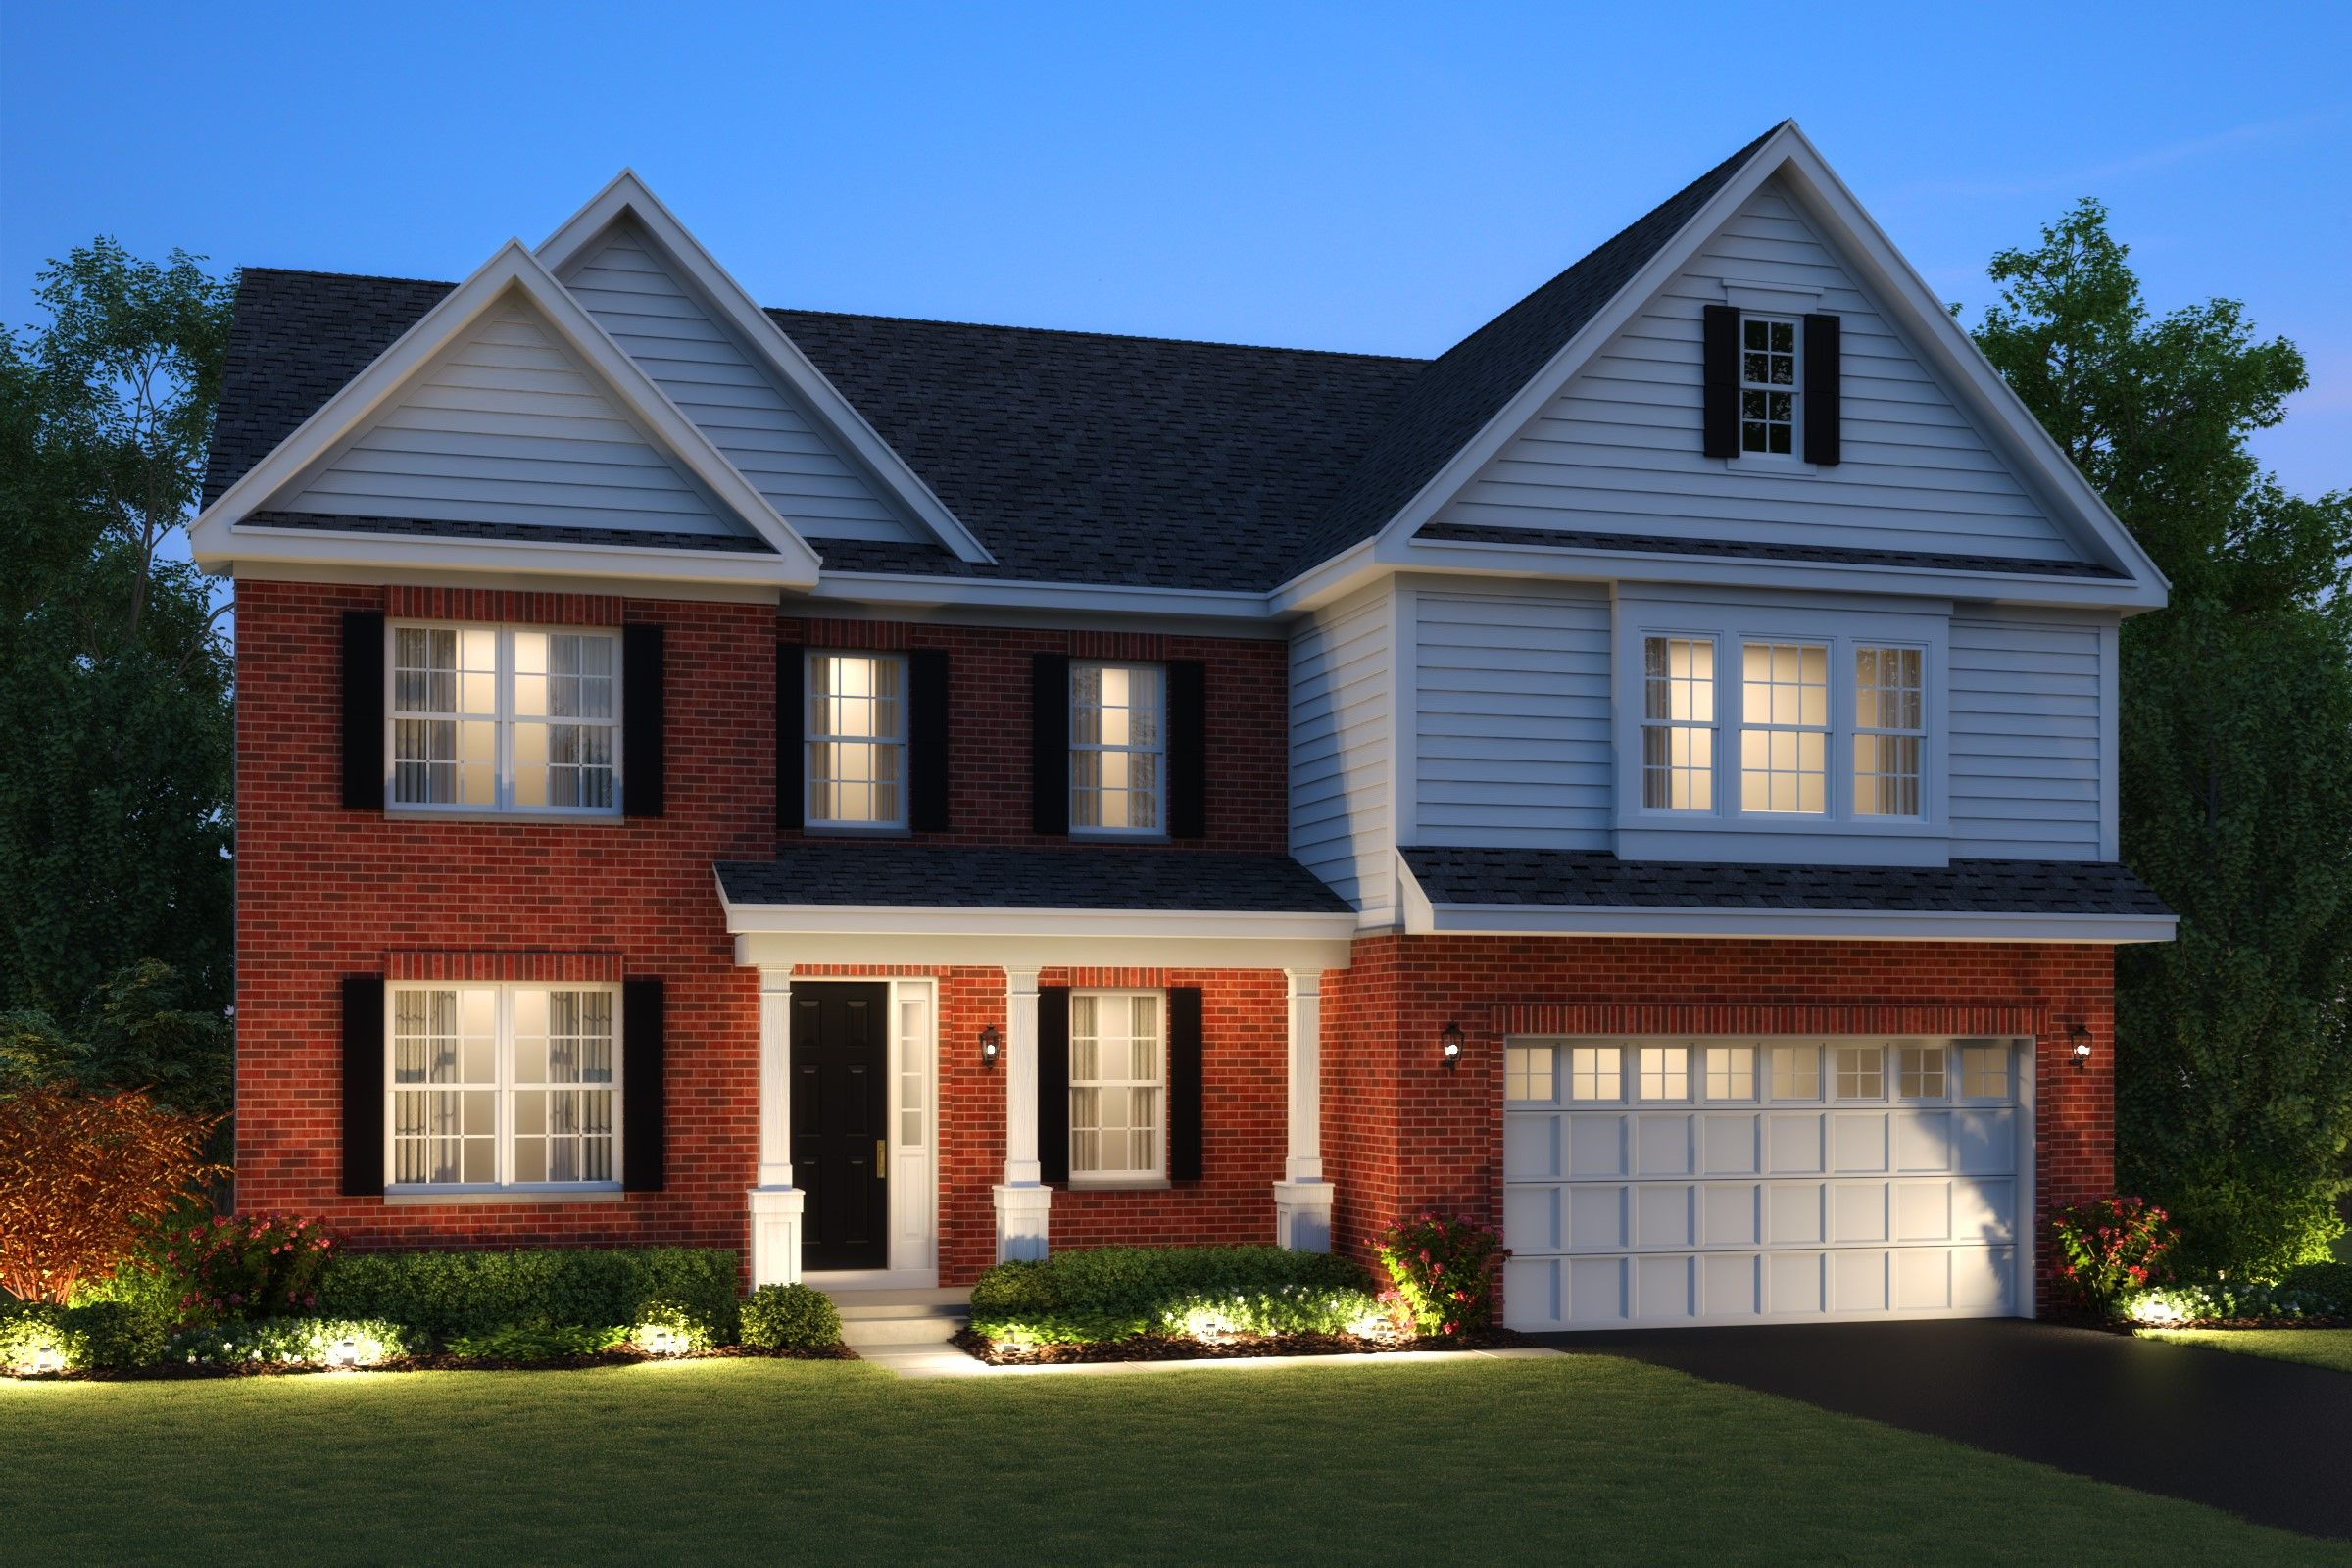 Single Family for Active at Shelton 1201 North Pointe Drive Libertyville, Illinois 60048 United States